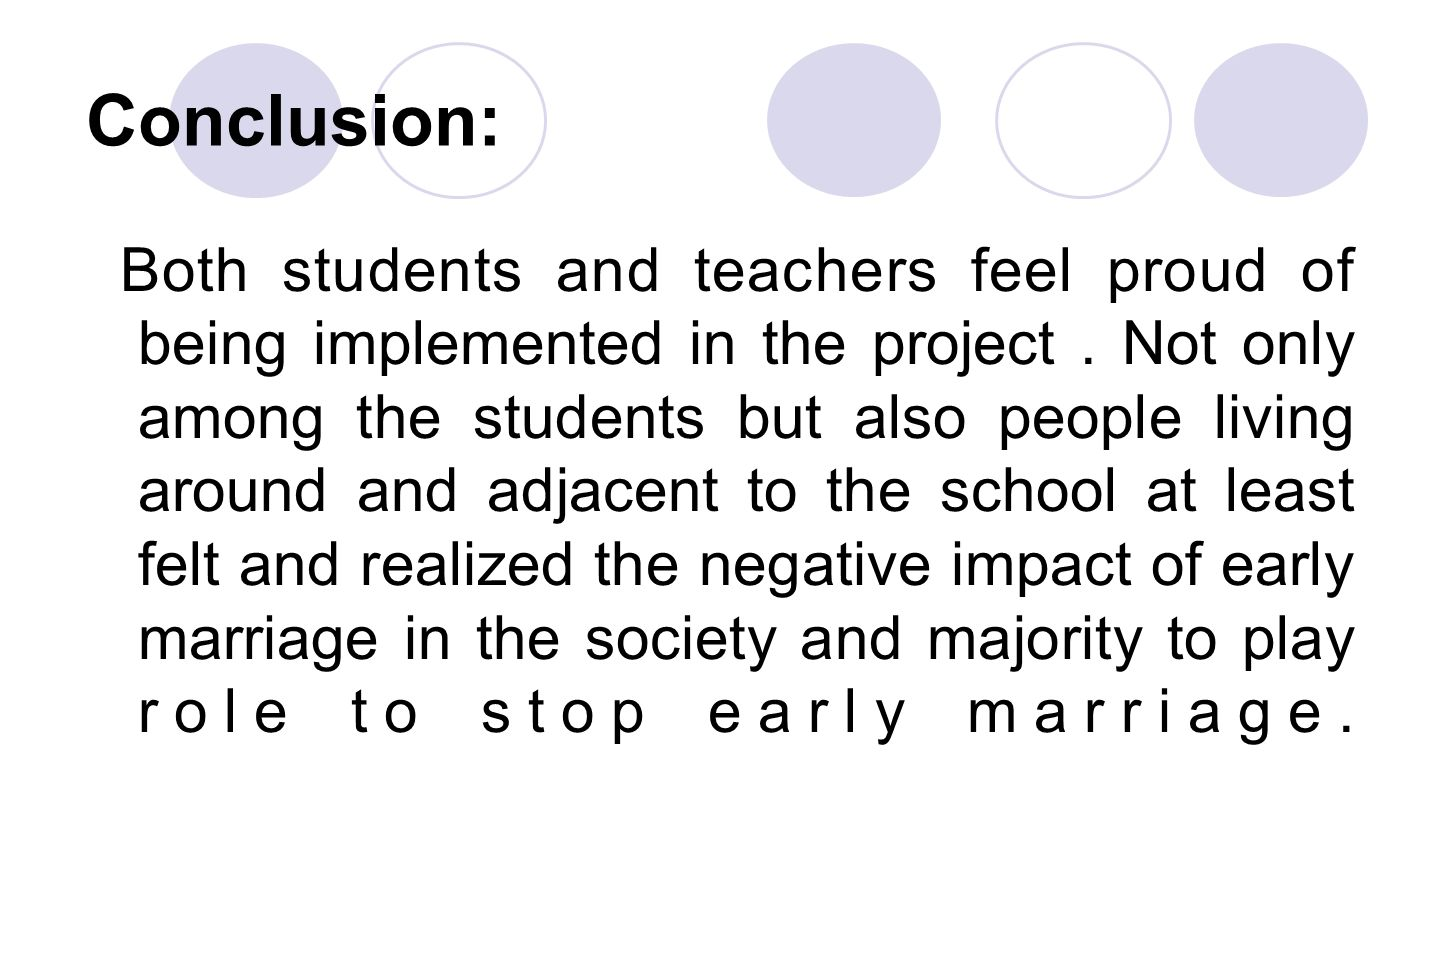 Conclusion: Both students and teachers feel proud of being implemented in the project. Not only among the students but also people living around and a